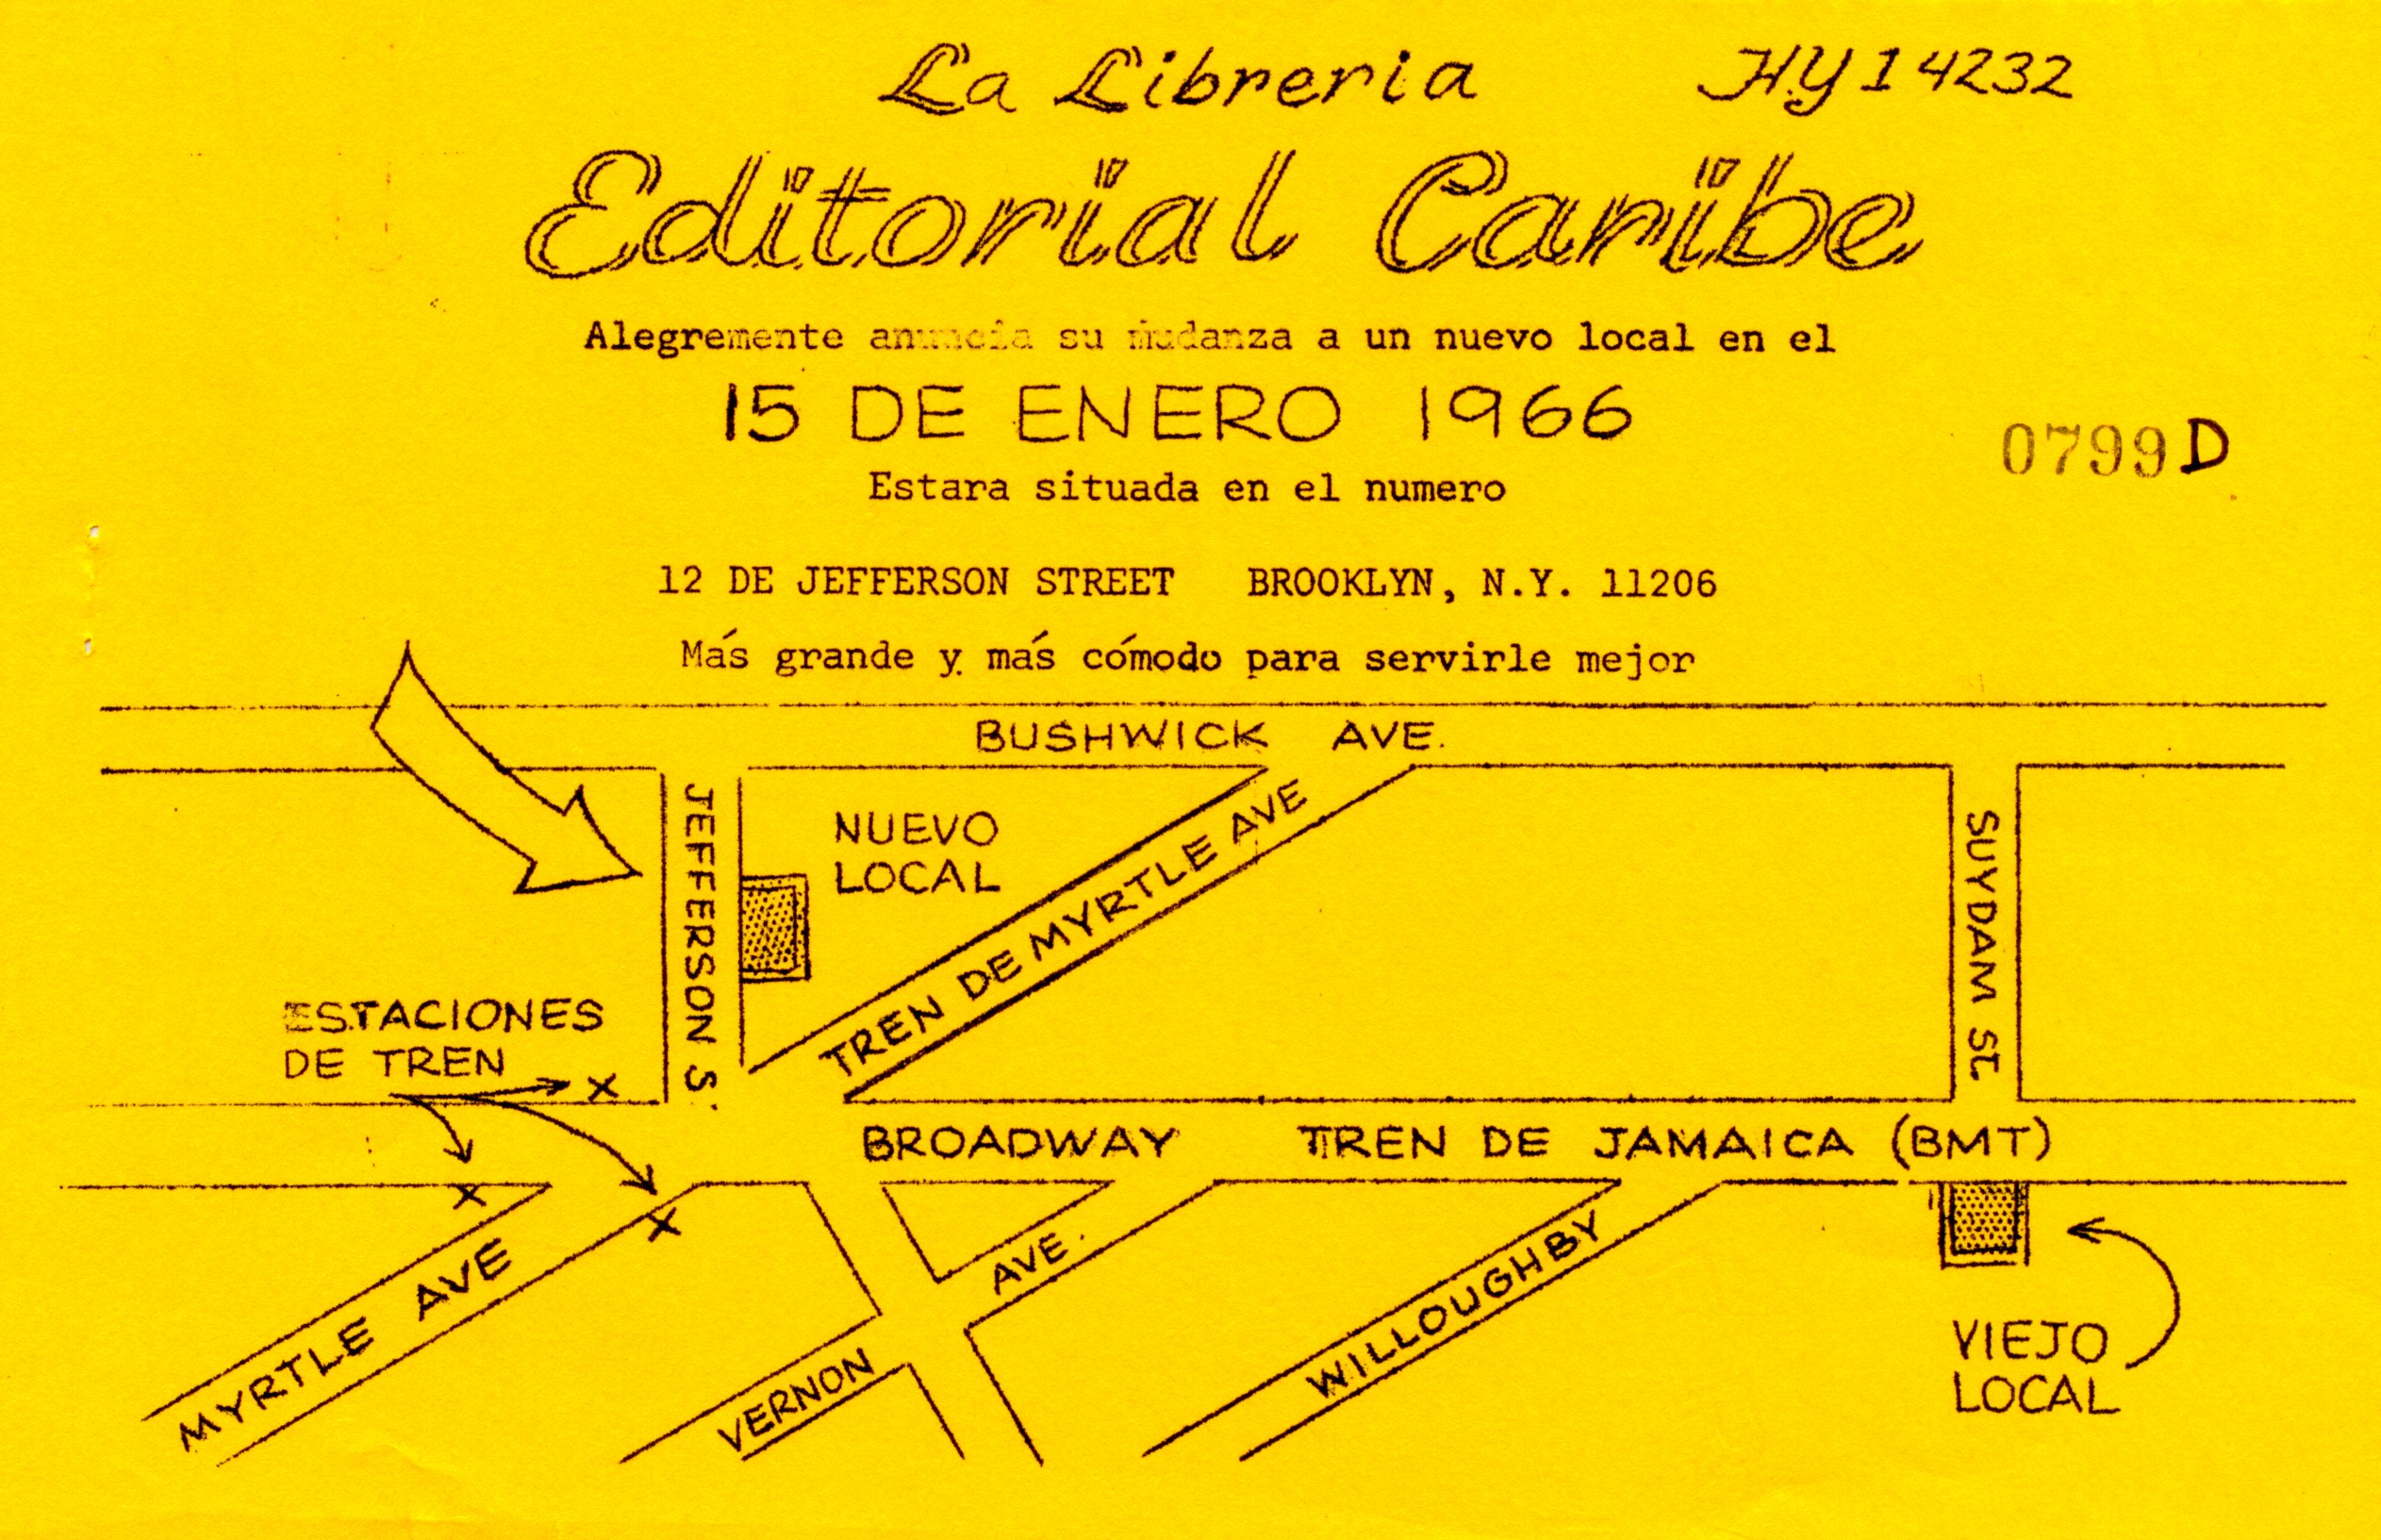 from Records of Latin America Mission, Collection 236, box 5, folder 11